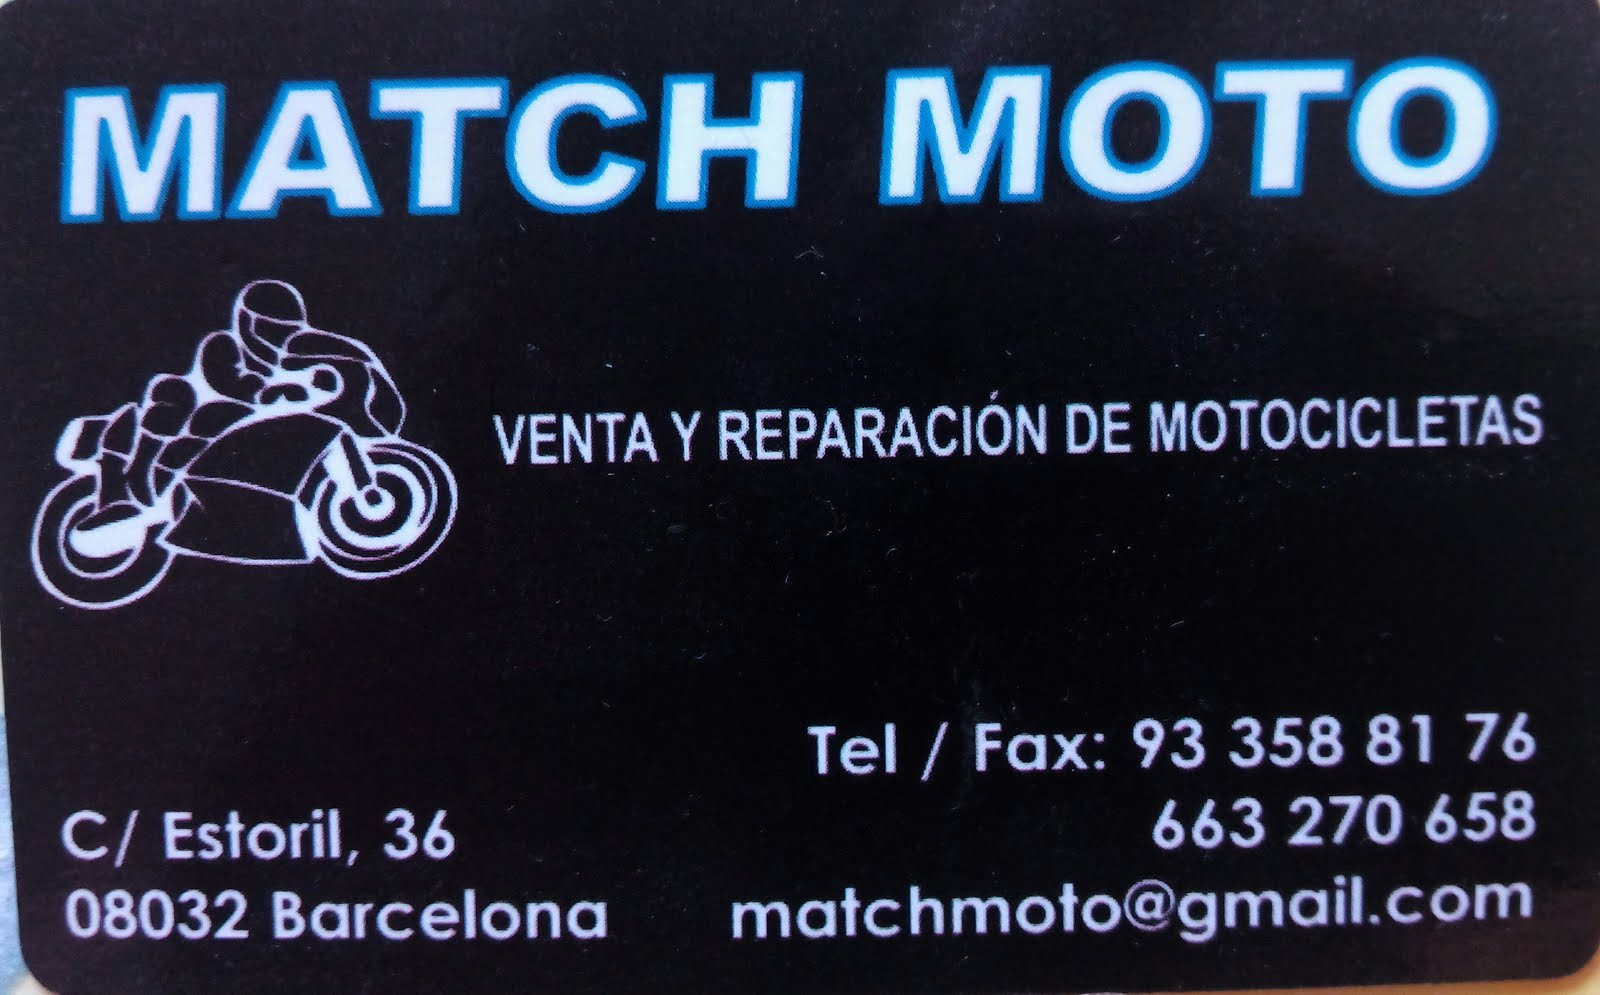 Friendly motorcycle workshops